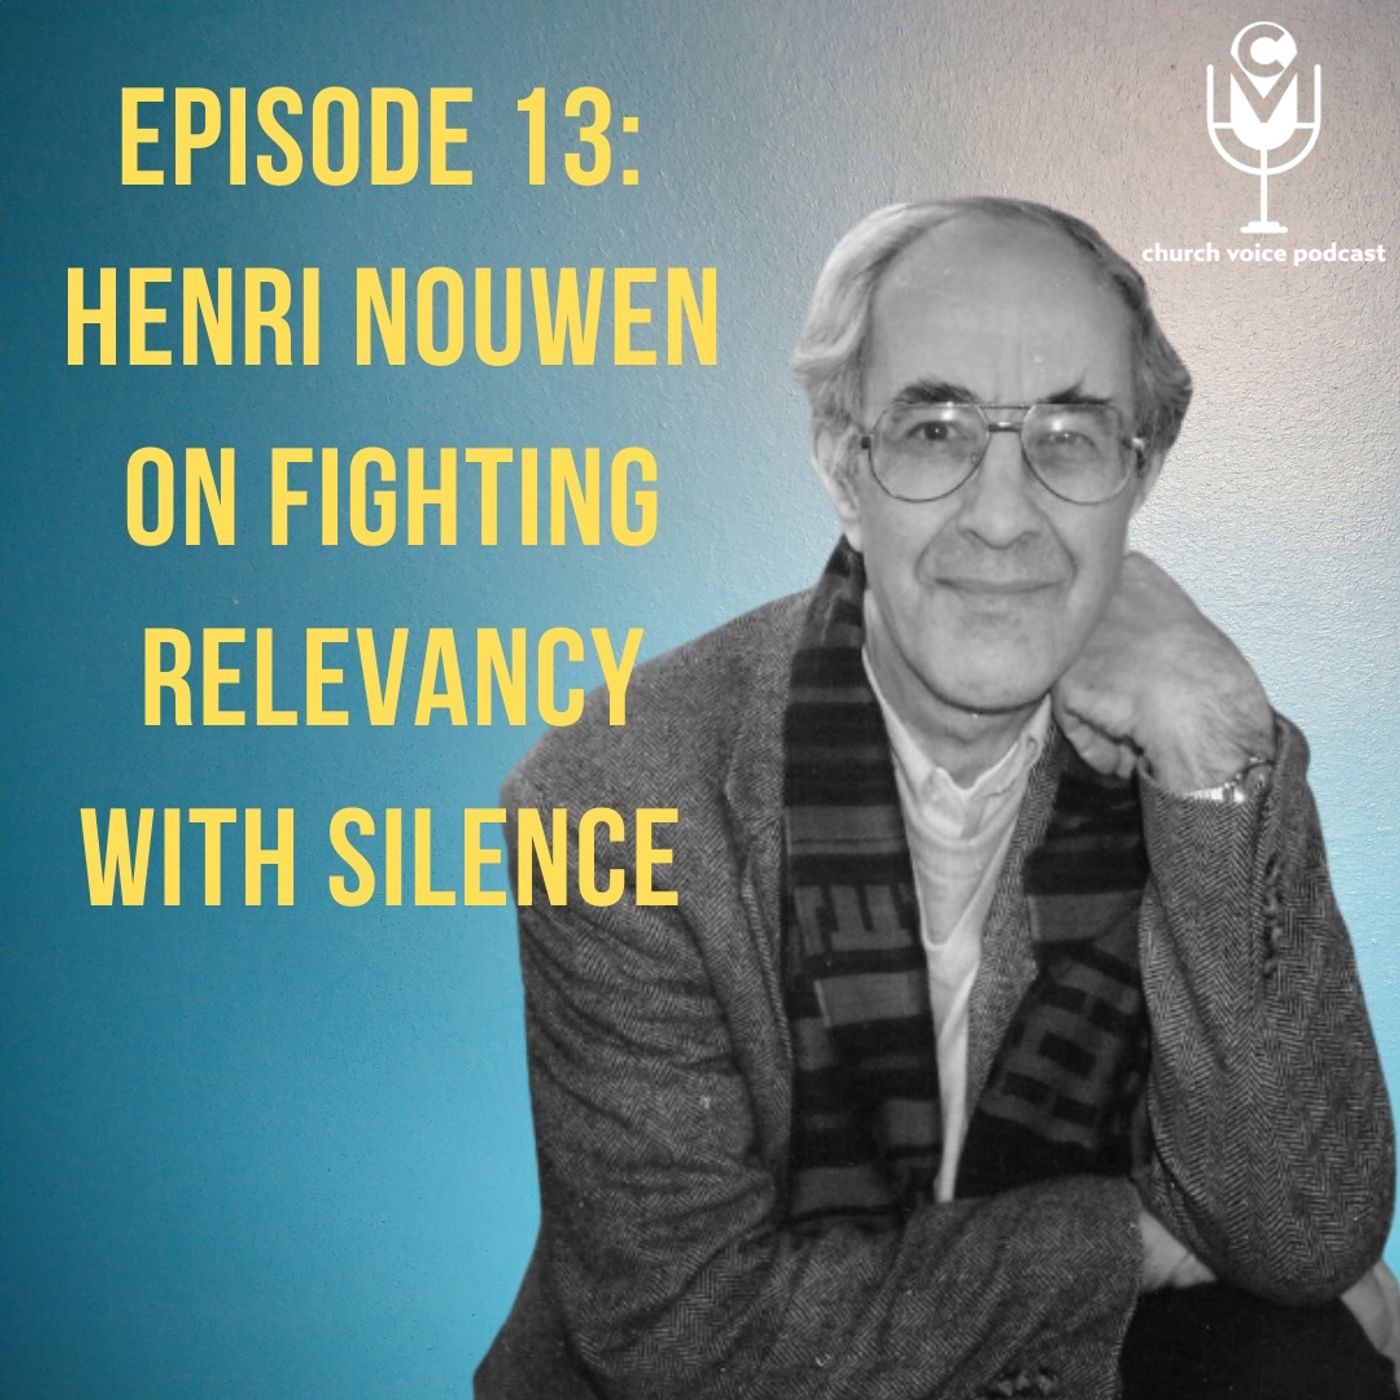 EP13 - Henri Nouwen on Fighting Relevancy with Silence!